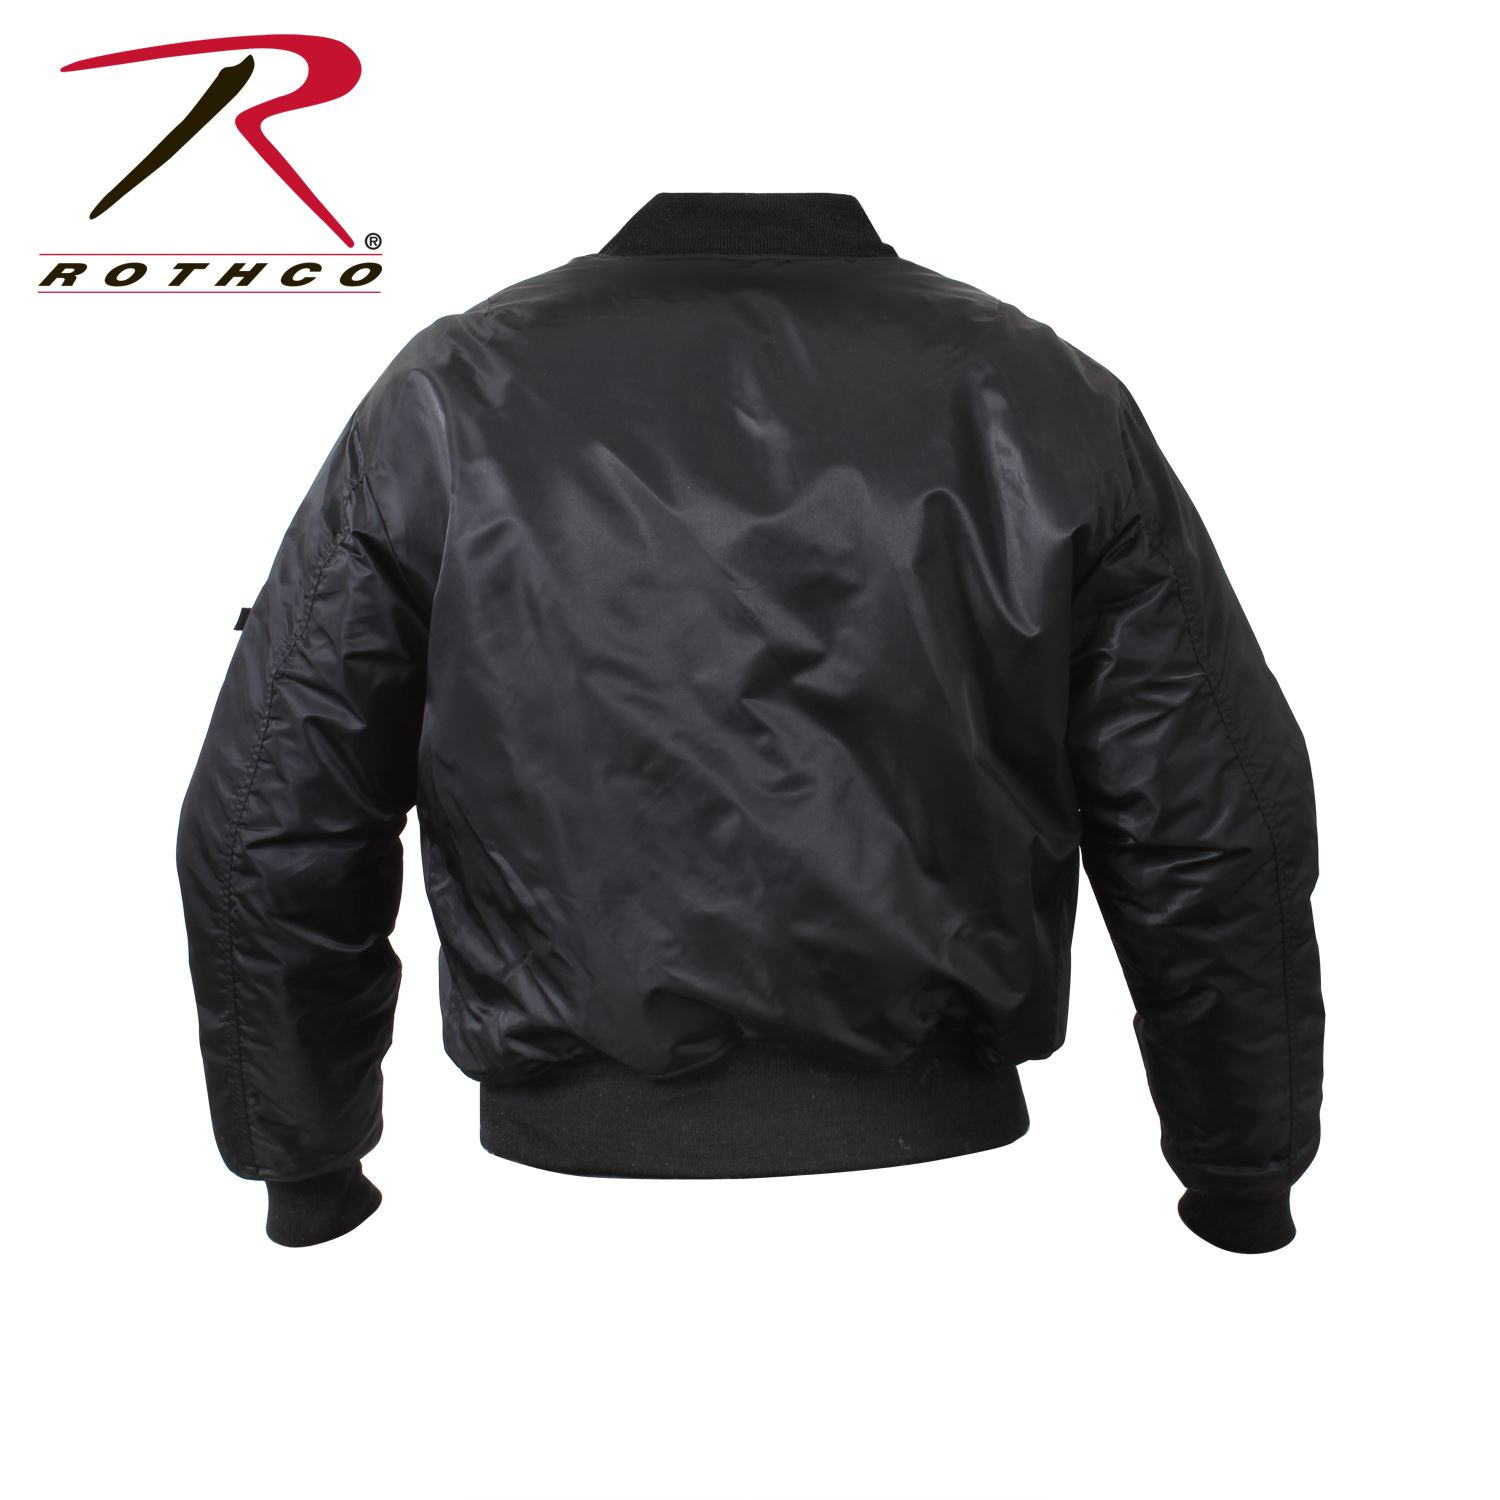 f29423b0 ... Picture of Rothco Air Force MA-1 Reversible Bomber Flight Jacket Black  ...